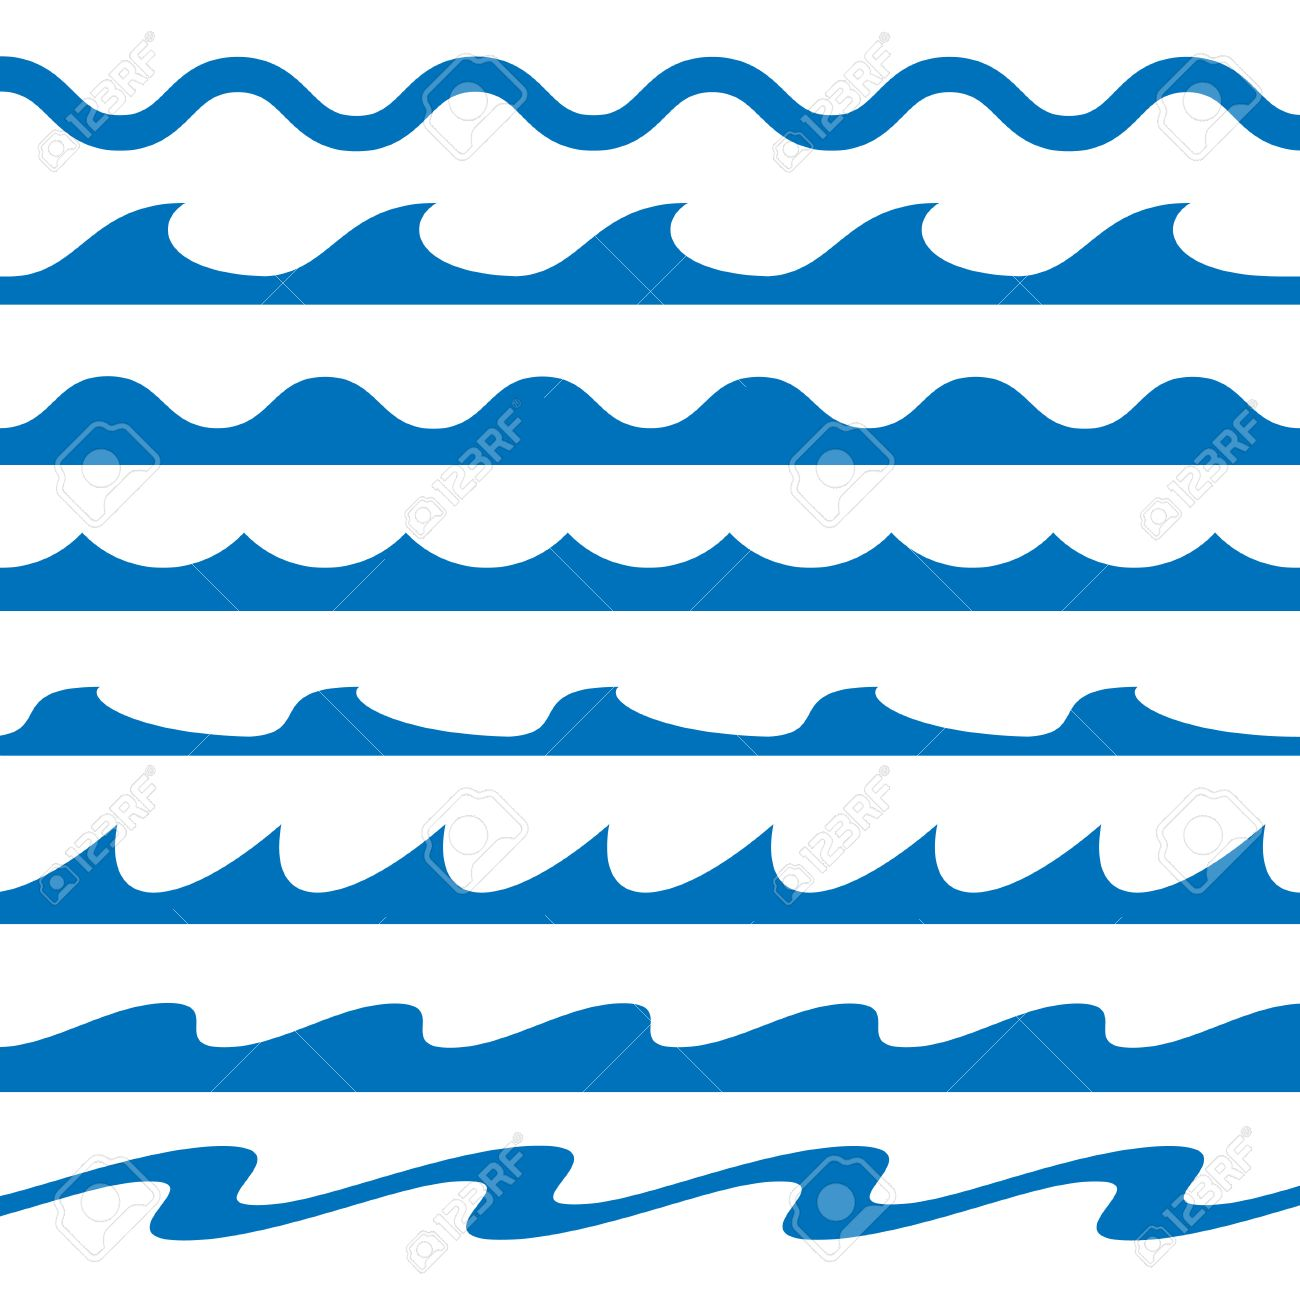 set of blue waves vector illustration royalty free cliparts rh 123rf com wave vector art waves vector free